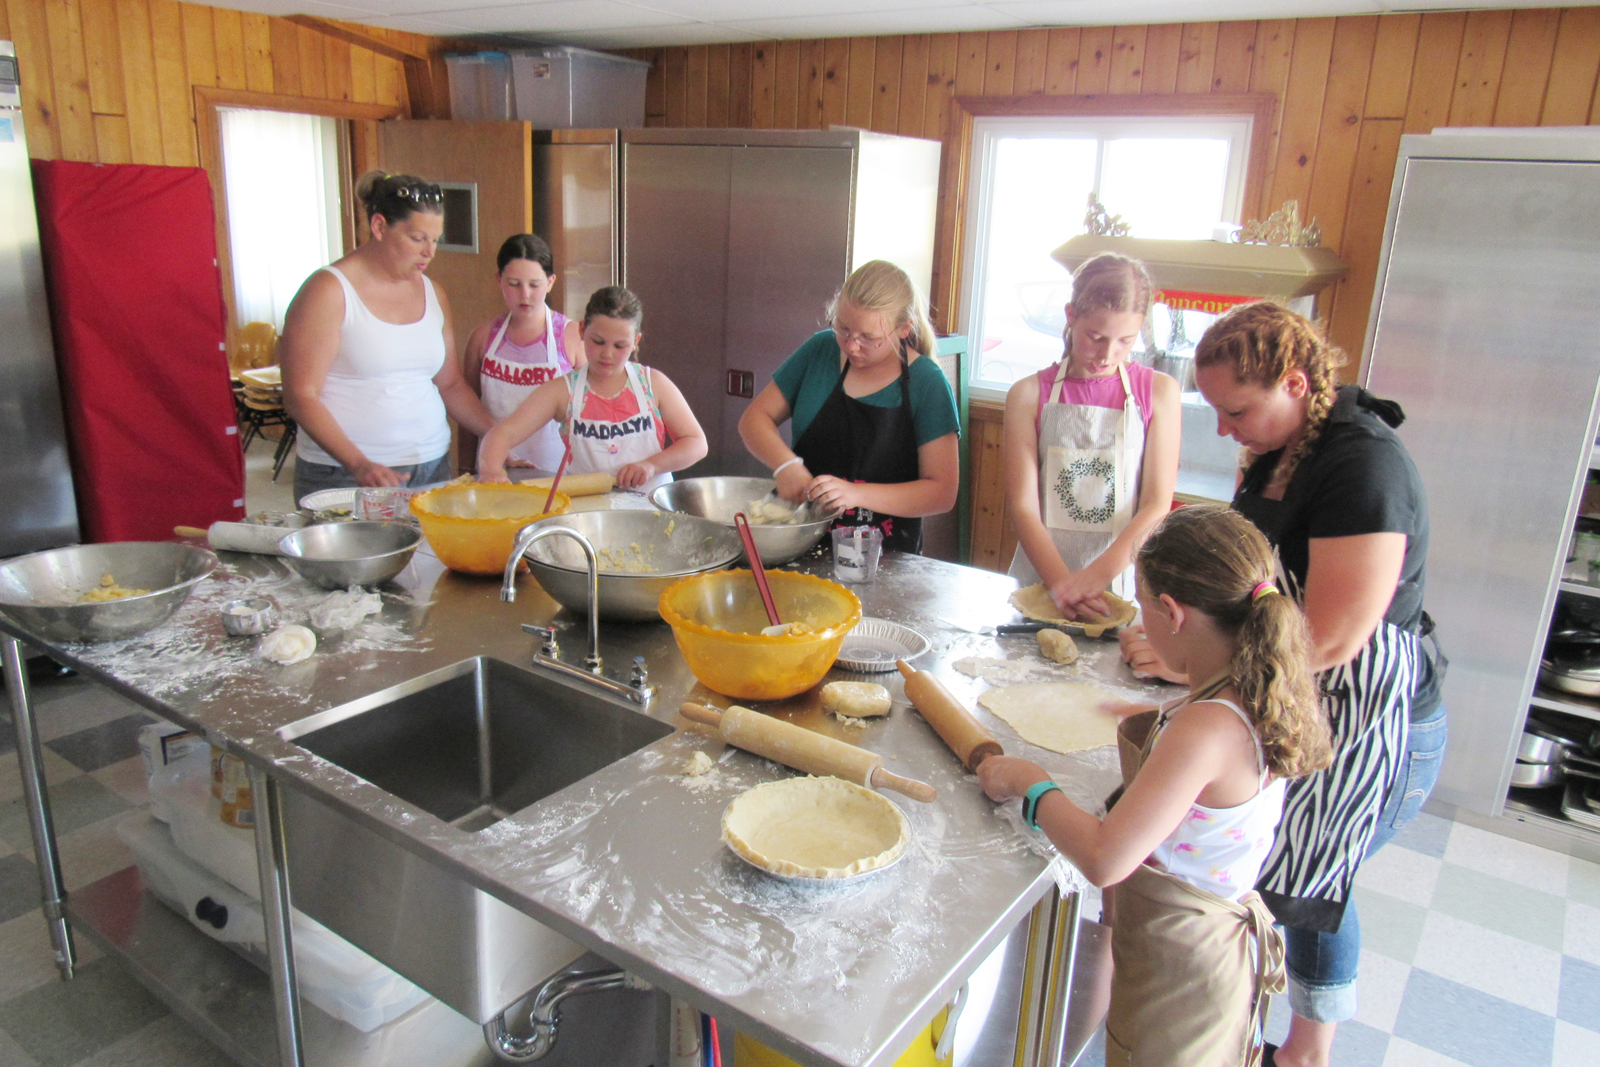 Orleans County 4-Hers and volunteers work recently at a Pie Workshop in the newly renovated Trolley Building on the fairgrounds. The pies will be sold at the Leader's Pie Stand during the upcoming Orleans County 4-H Fair to raise funds for 4-H activities and award trips. K. Gabalski photo